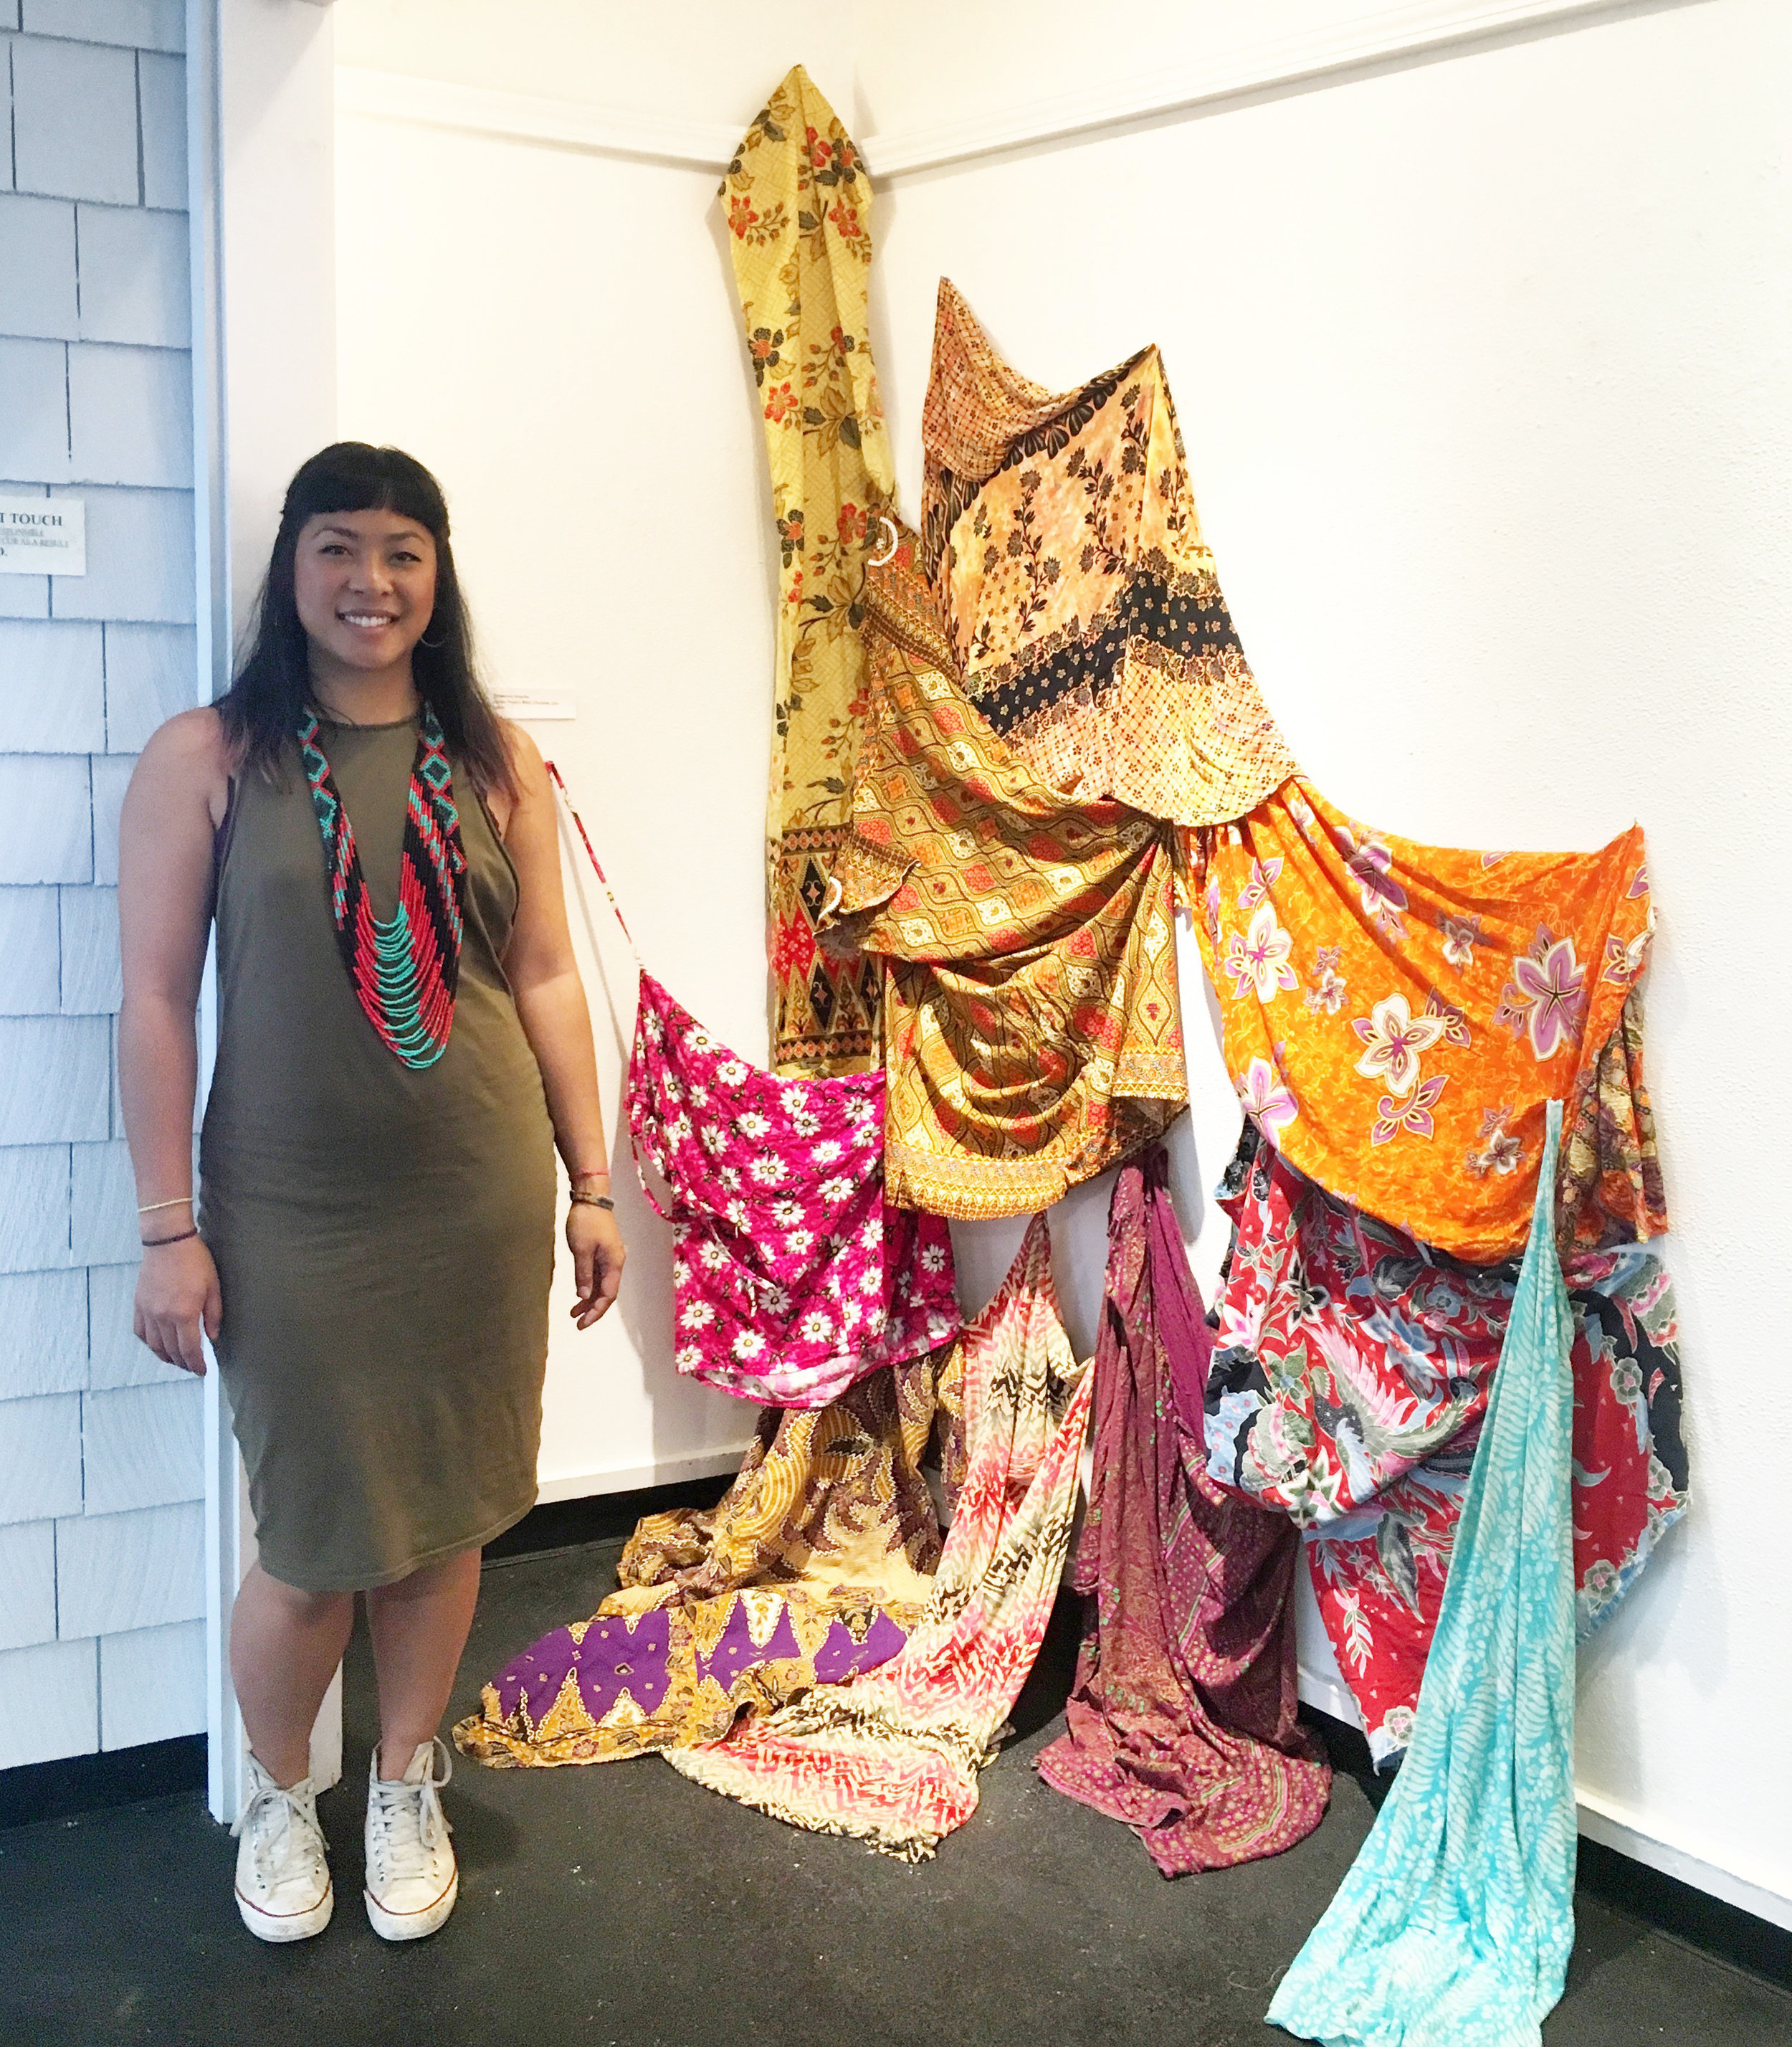 Kimberley Acebo Arteche with her work at Wailoa Arts & Cultural Center in Hilo, Hawaii. Photo by Janna Añonuevo Langholz